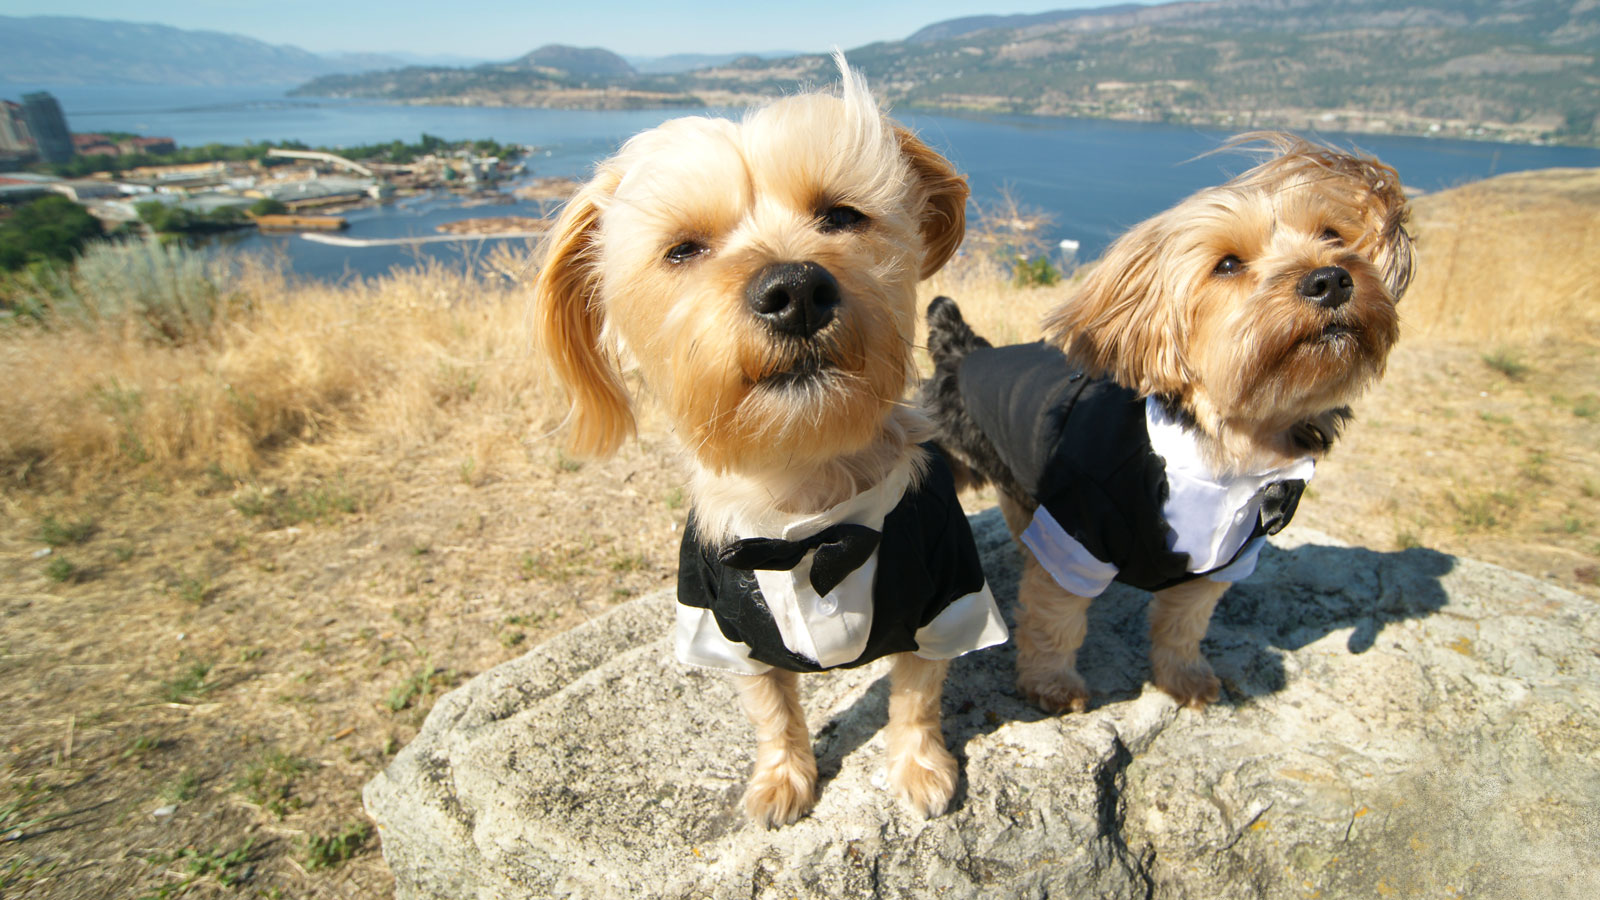 martha-stewart-dog-tuxedo-FT-BLOG0417.jpg